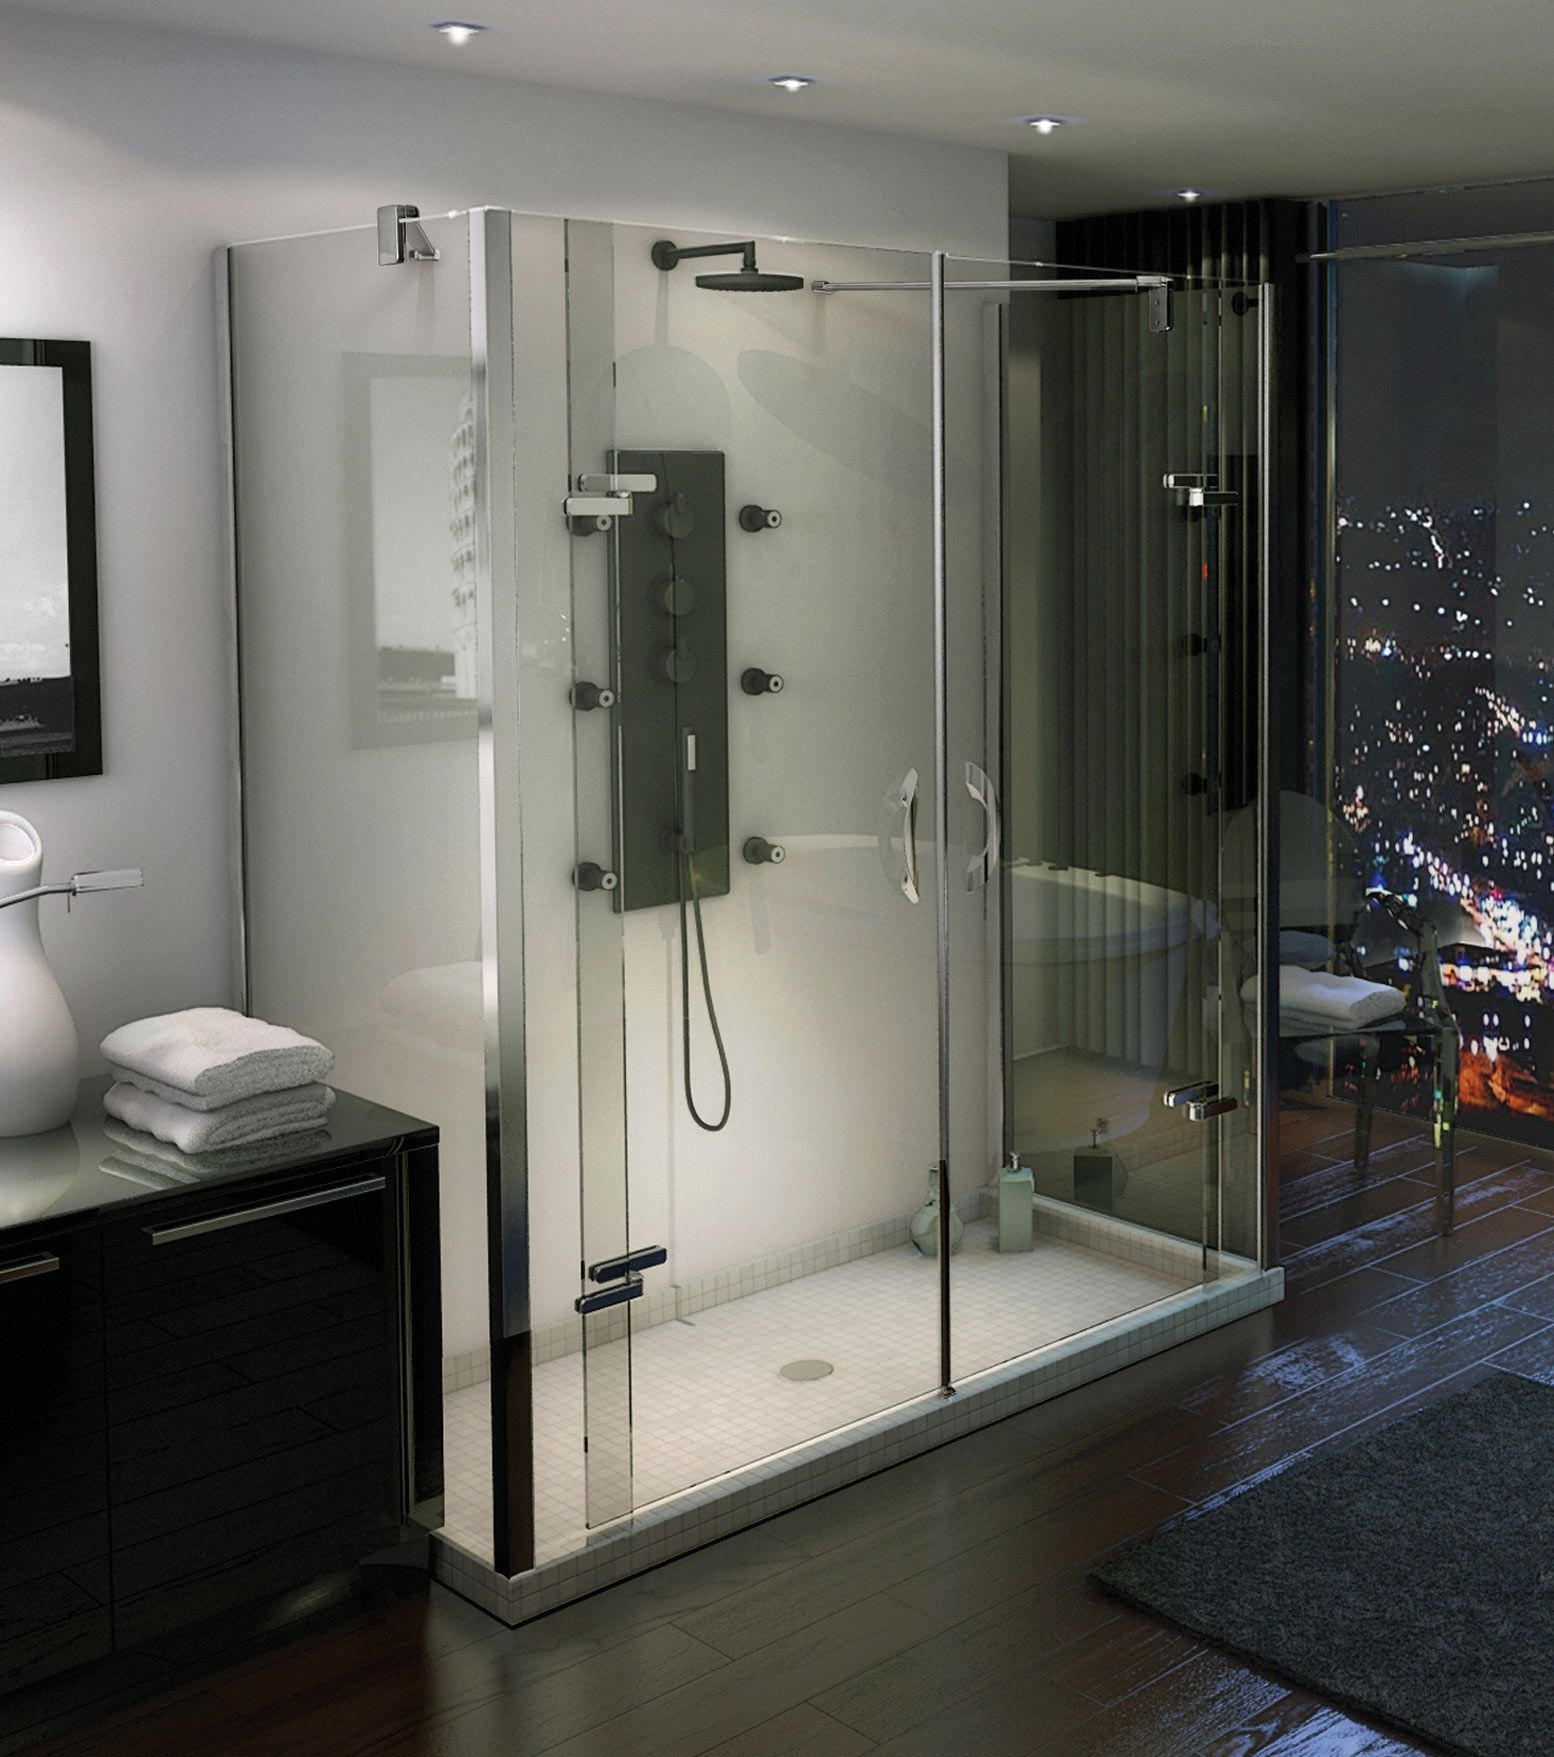 MAAX - Purfect Dual Wall-Mounted Shower Door www.maax.com | Showers ...